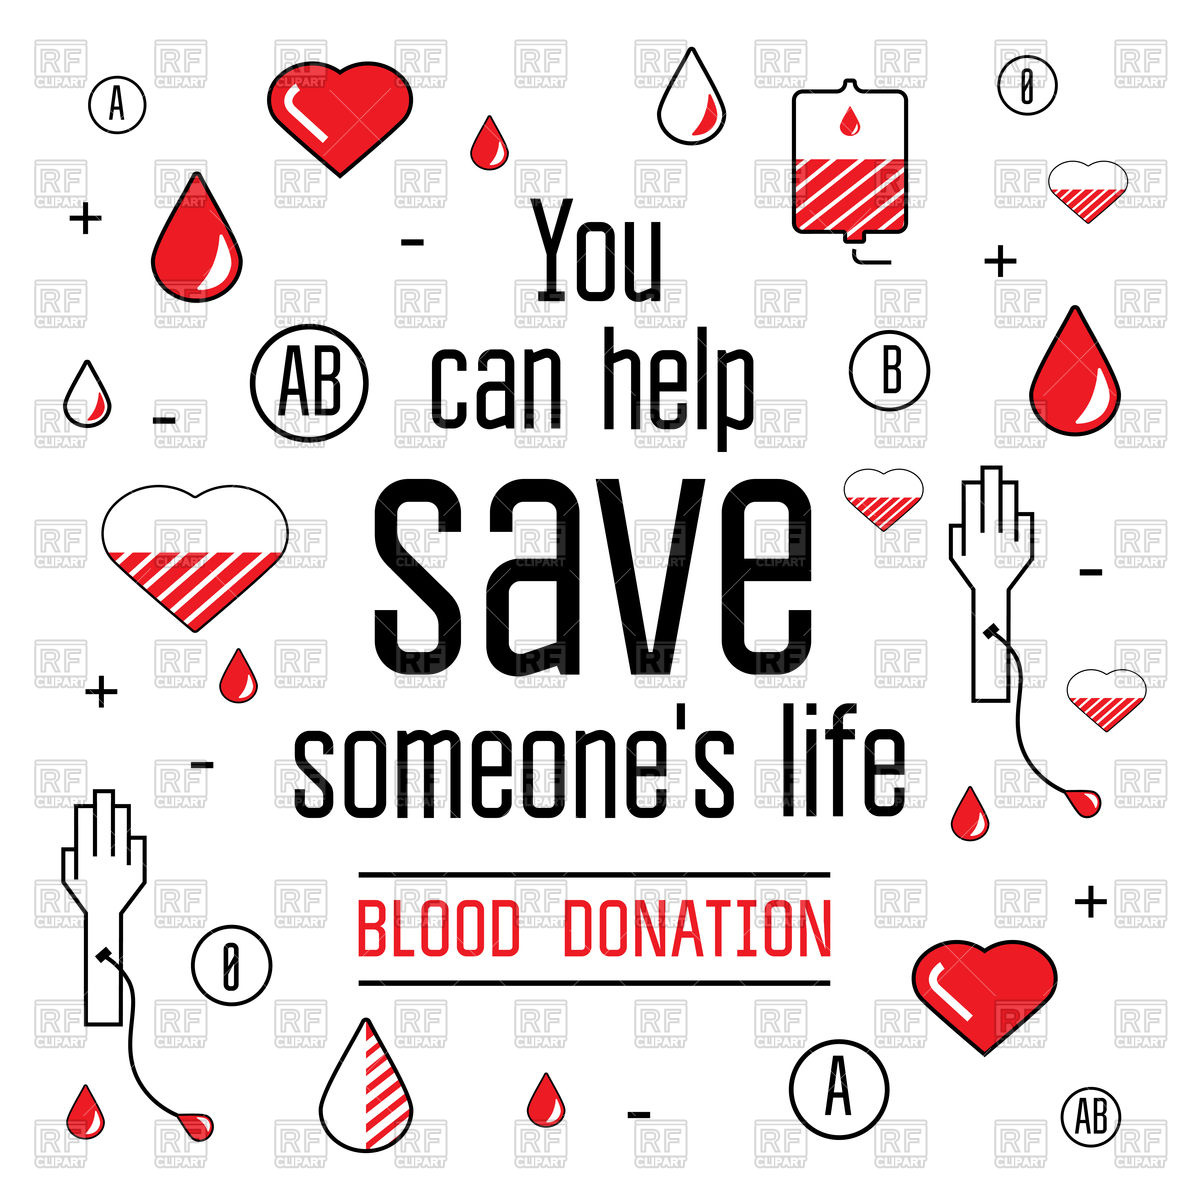 Blood donation icons.